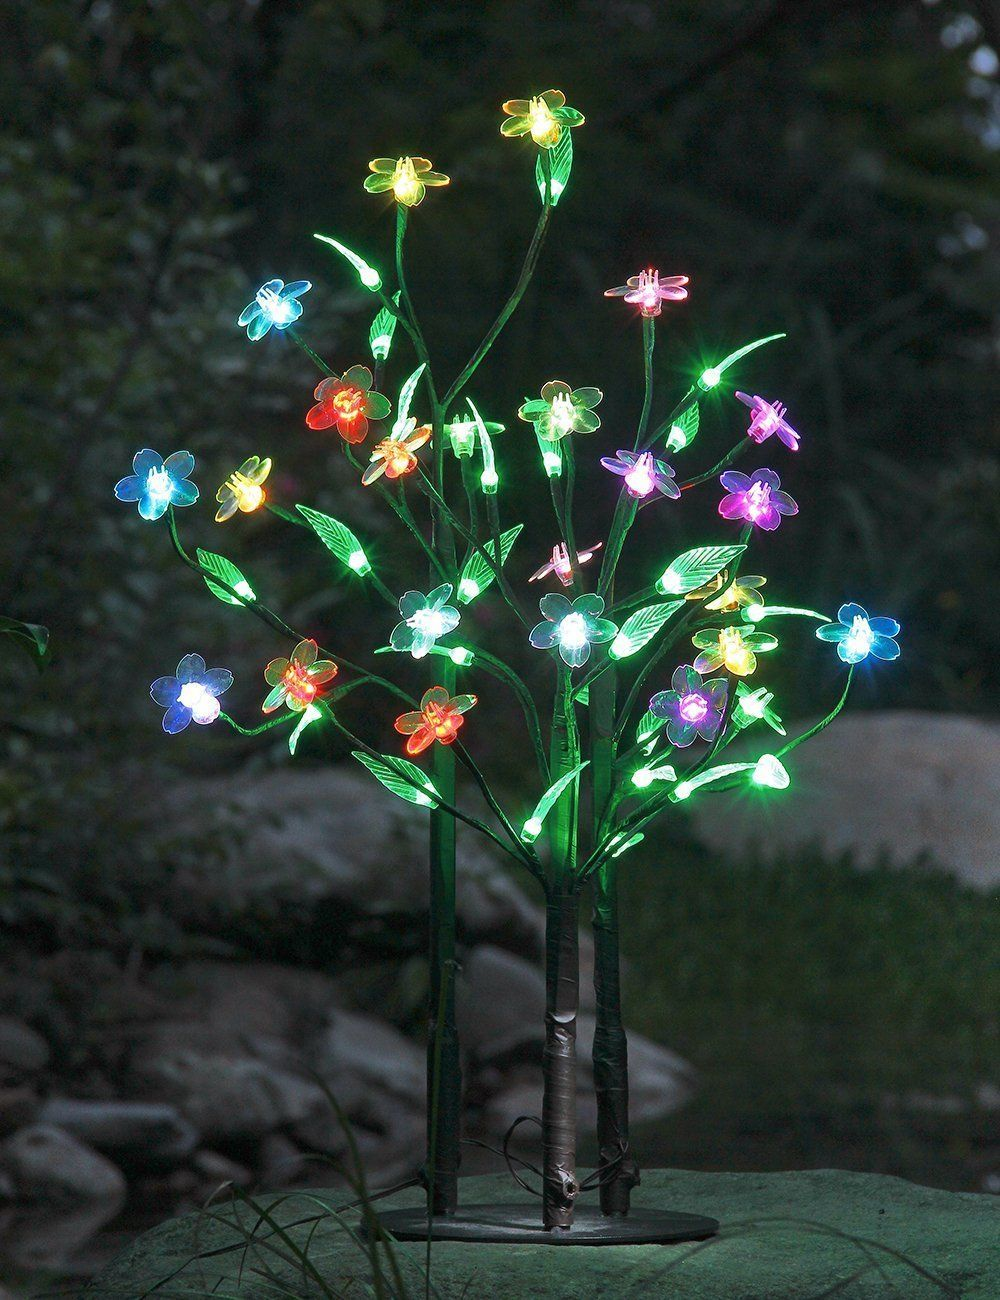 Amazon.com: Lightshare 5Ft 96LED Dimmable Color Flower Tree Light ...